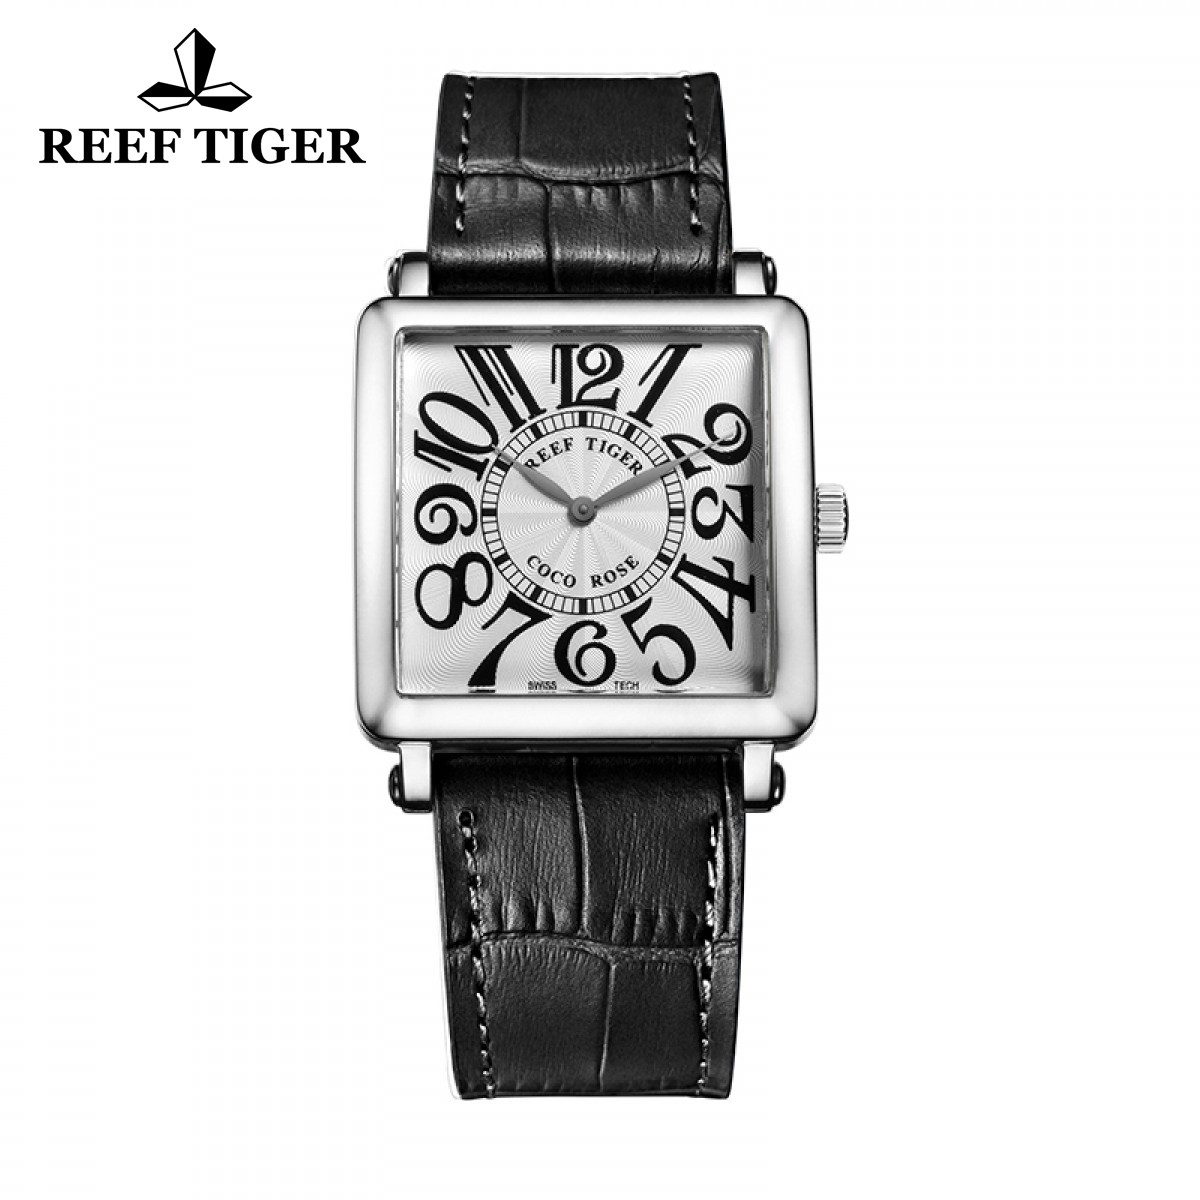 Reef Tiger Lady Fashion Watch Steel Case White Dial Black Leather Square Watch RGA173-YWBA